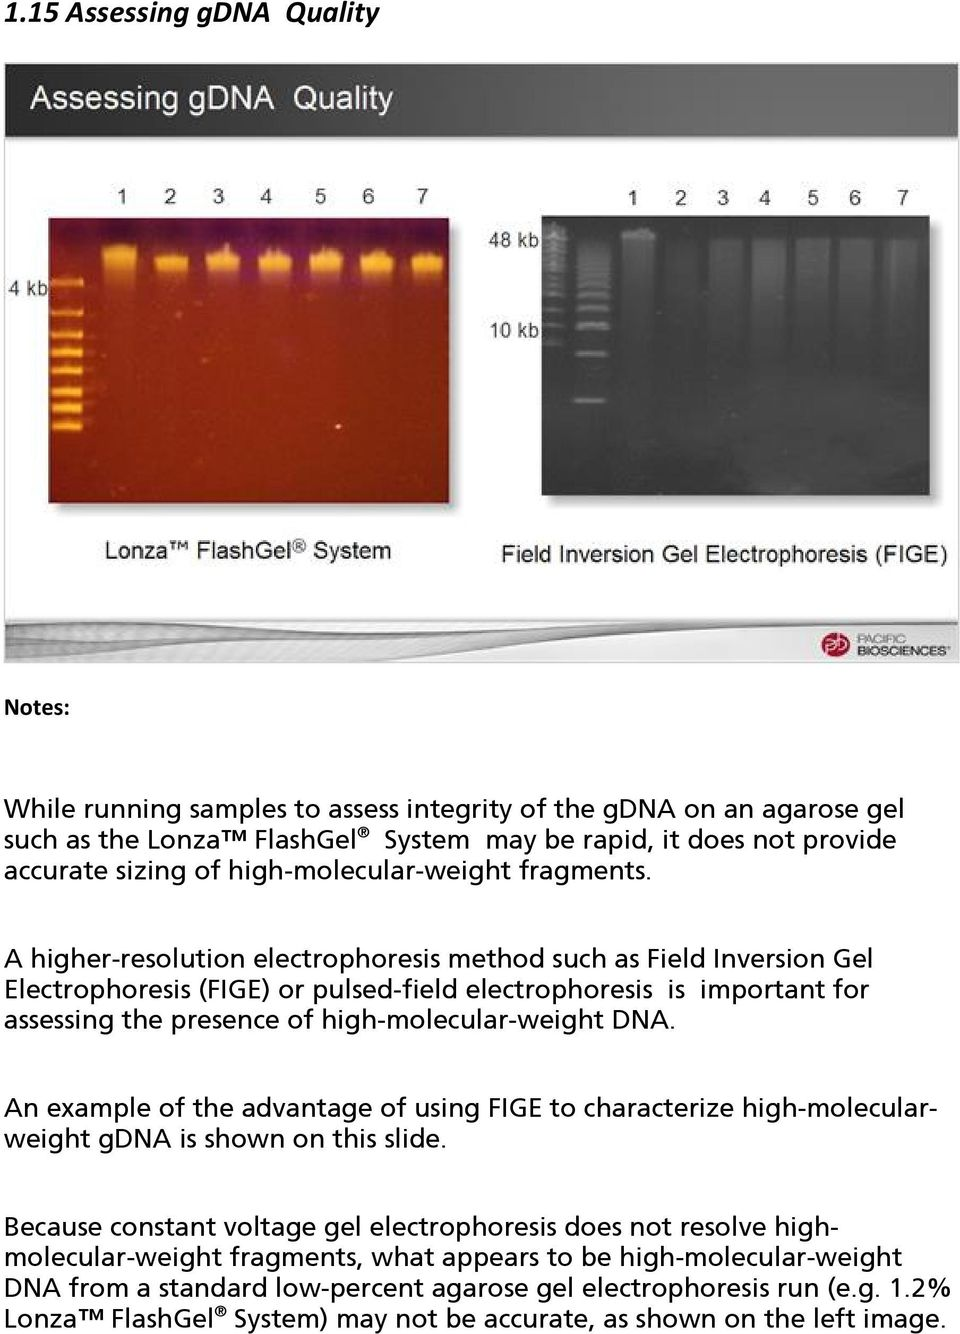 A higher-resolution electrophoresis method such as Field Inversion Gel Electrophoresis (FIGE) or pulsed-field electrophoresis is important for assessing the presence of high-molecular-weight DNA.